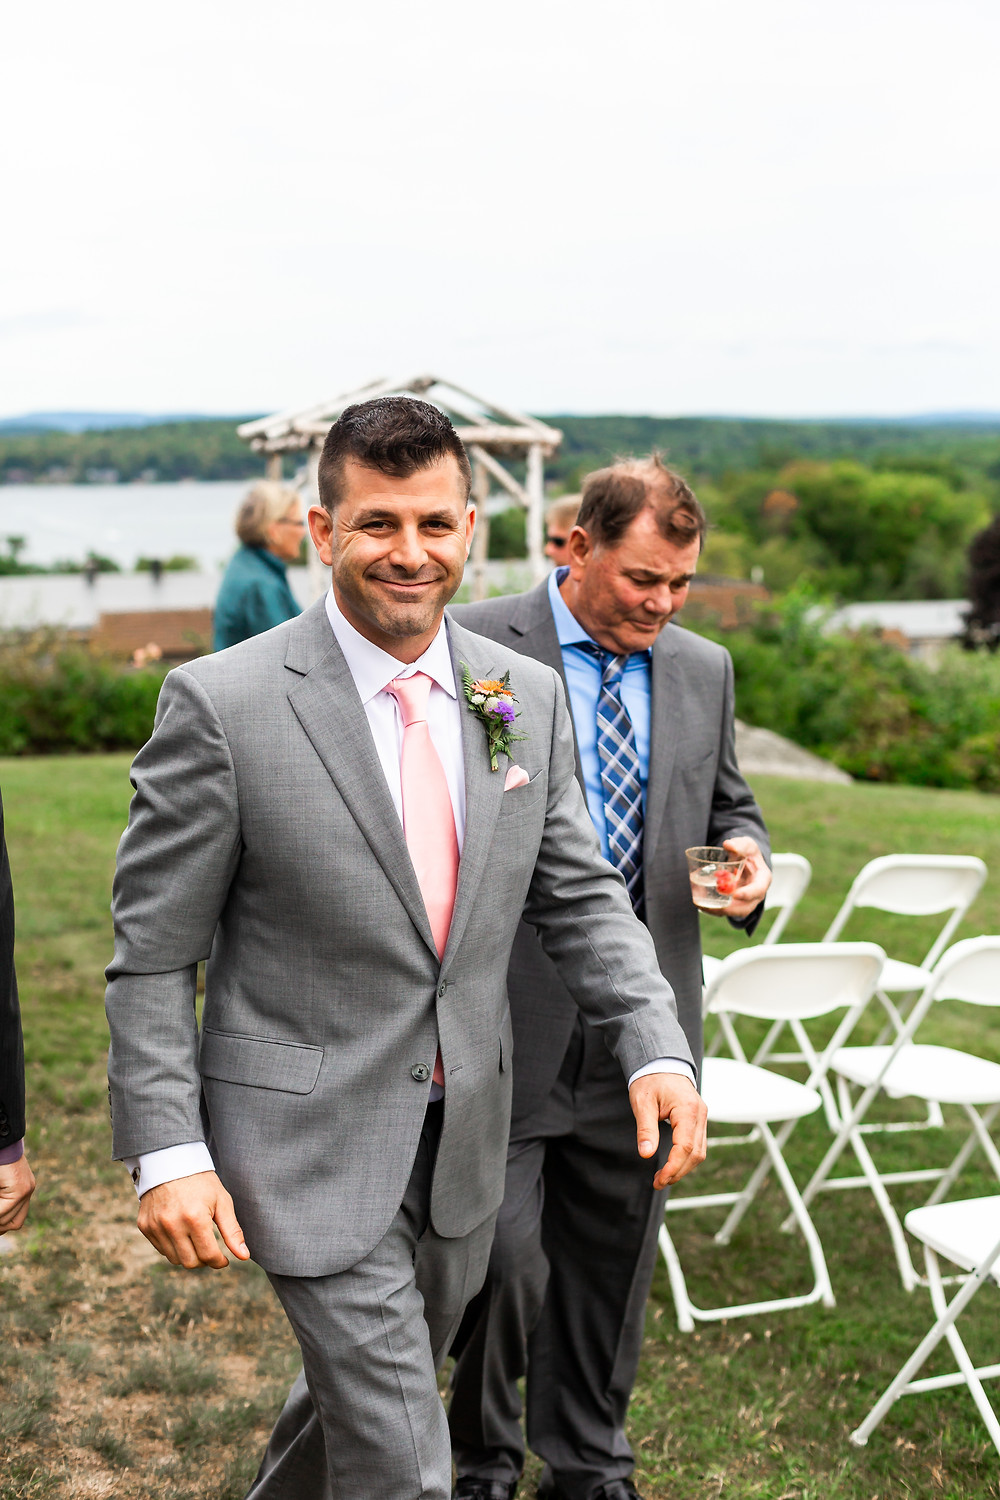 The groom walks across the lawn at the grandview resort in Laconia New Hampshire on his wedding day.